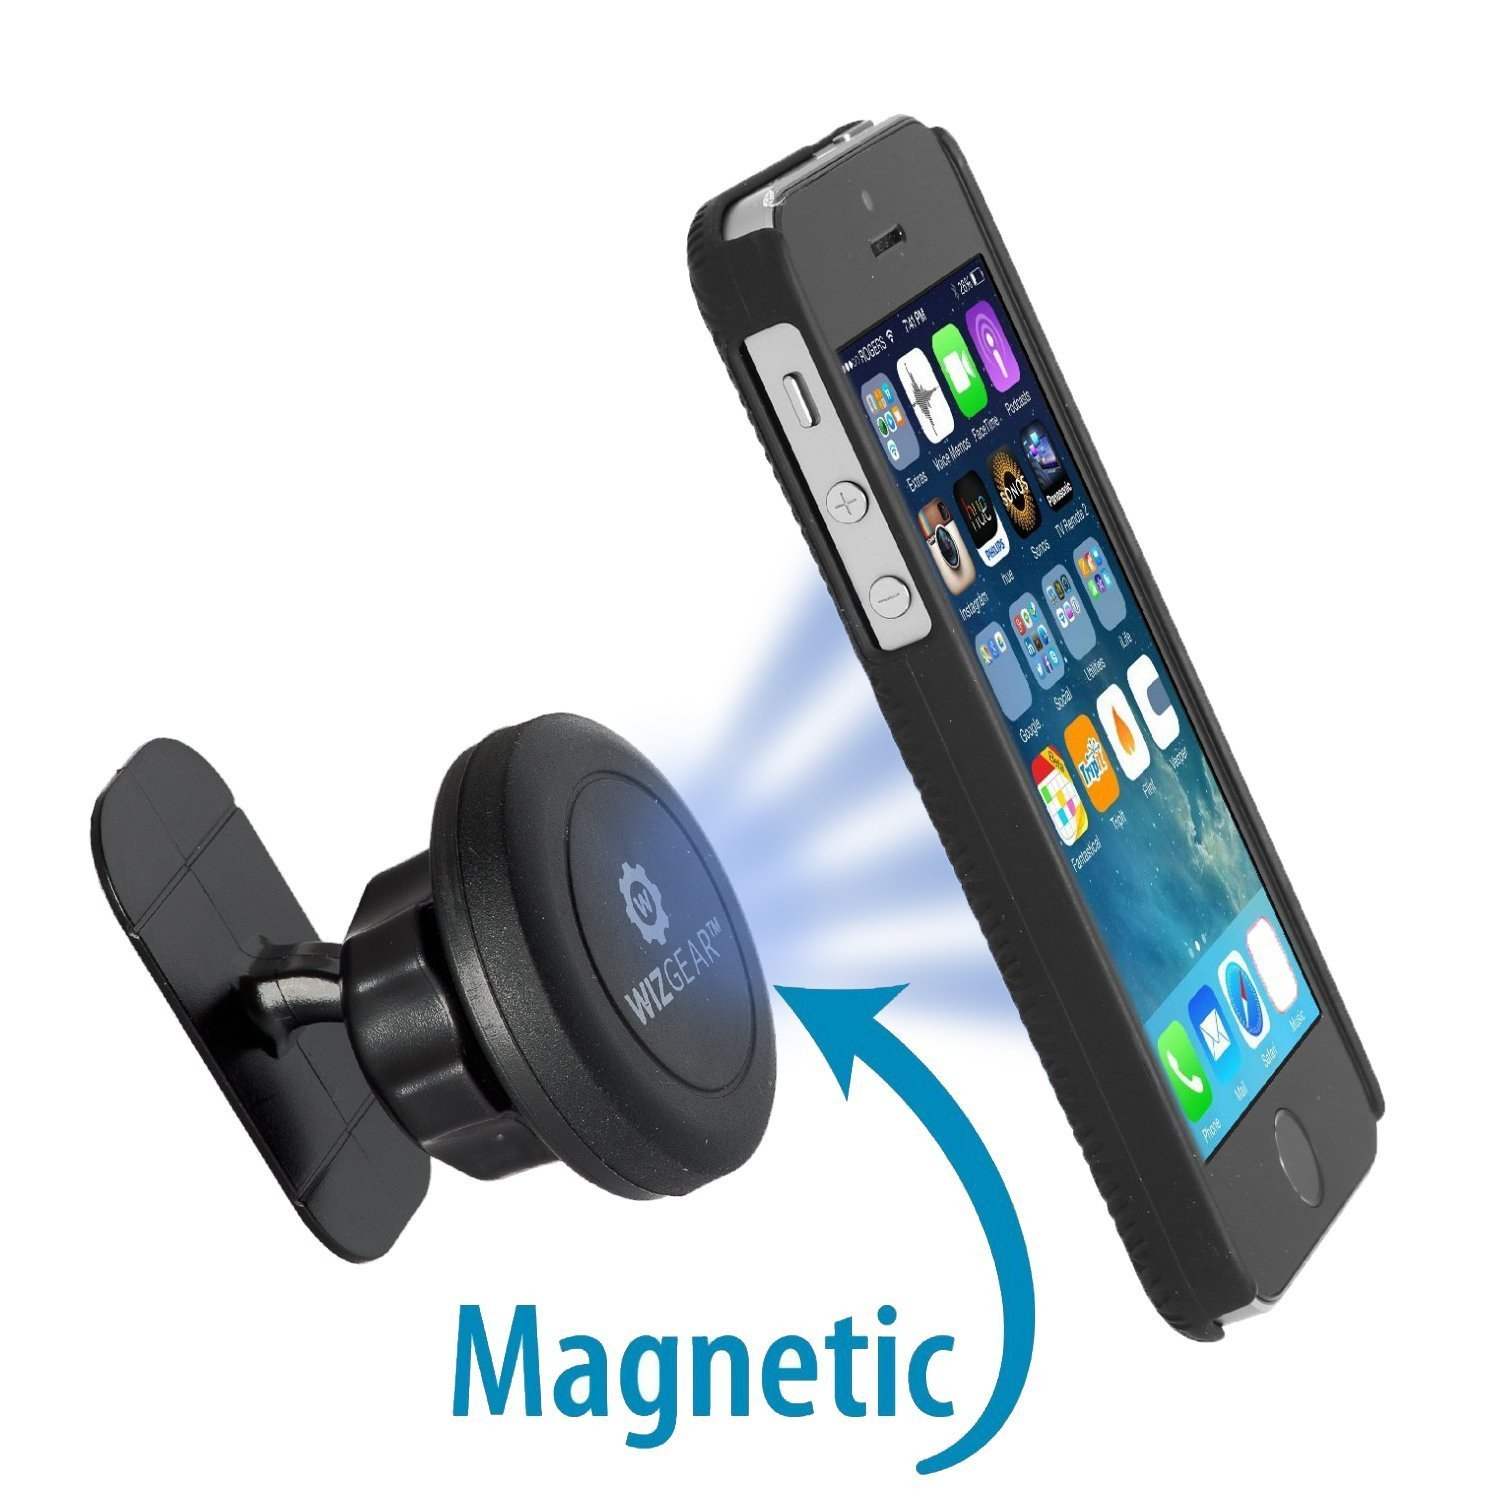 Universal car air vent cell phone holder 5